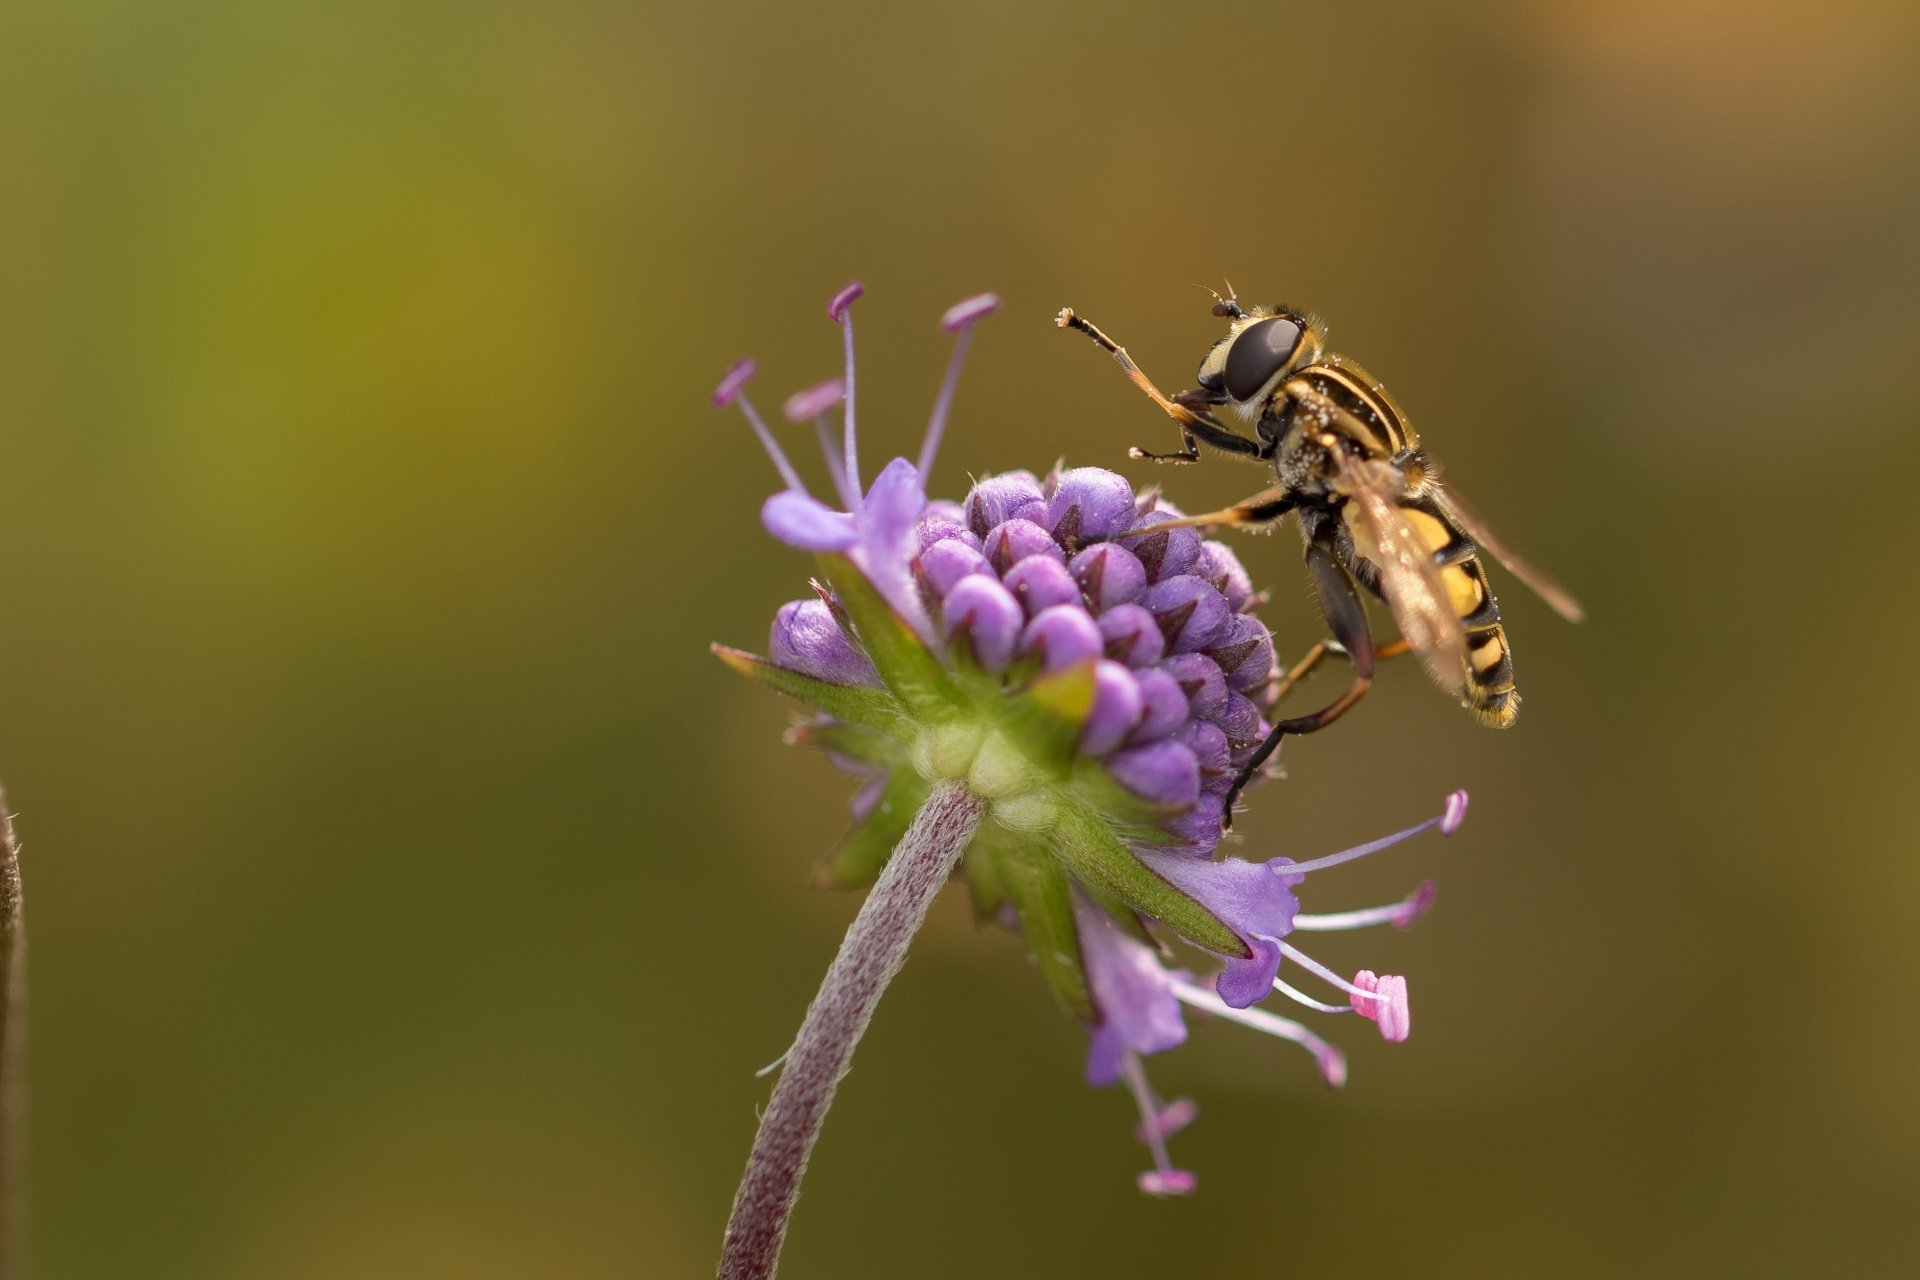 Animal - Hoverfly  Insect Flower Purple Flower Blur Wallpaper